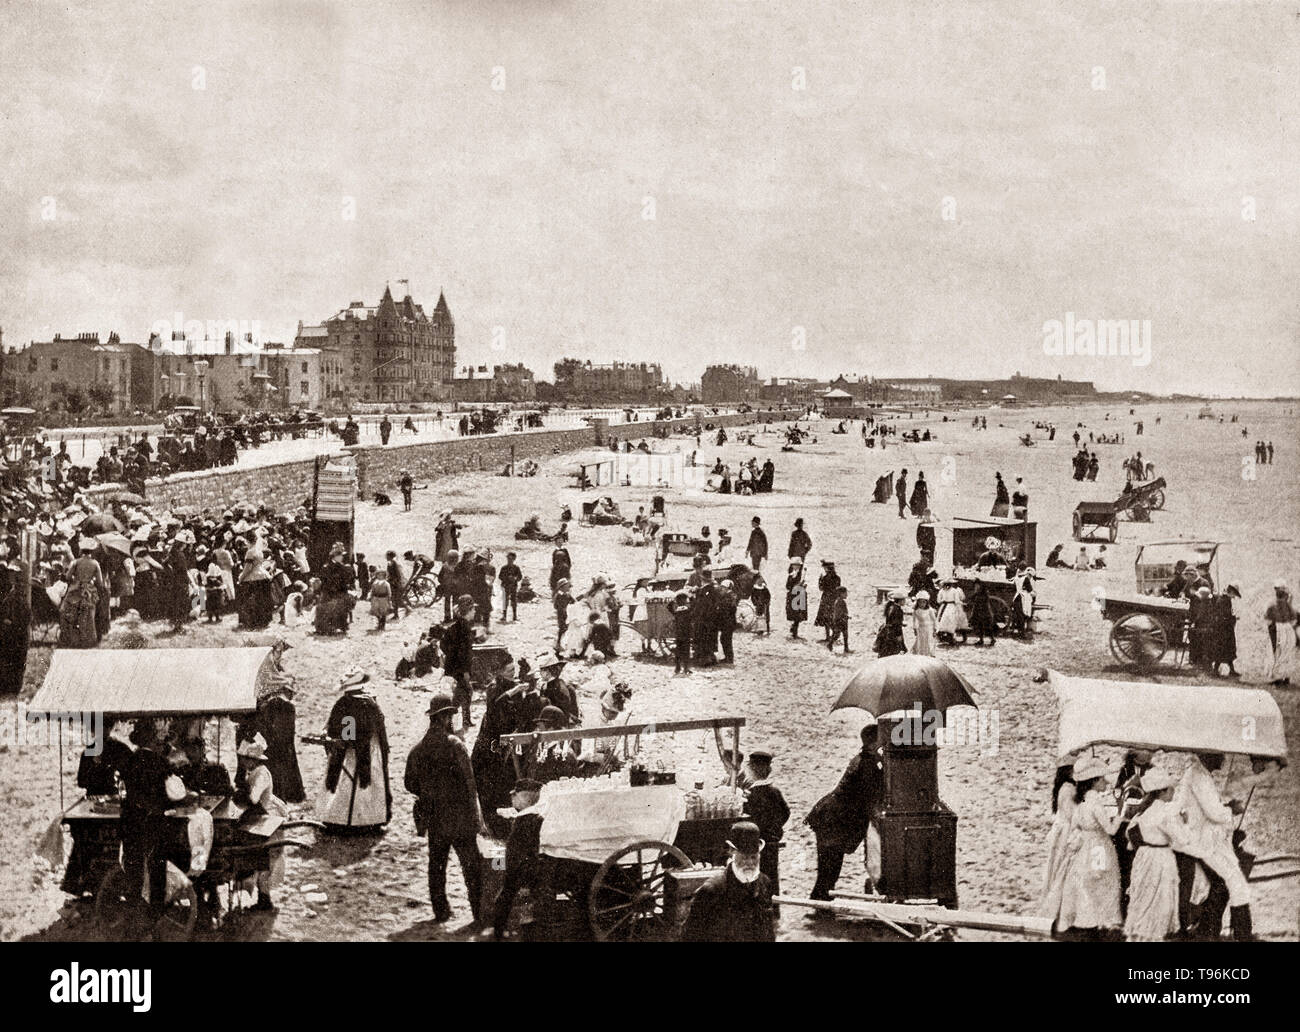 A late 19th Century view of a crowded beach at Weston-Super-Mare, aka Weston, a seaside town on the Bristol Channel in North Somerset, England. Early in the 19th century, Weston was a small village of about 30 houses, located behind a line of sand dunes fronting the sea, and grew with the Victorian era boom in seaside holidays.  Mining families came across the Bristol Channel from South Wales by paddle steamer to enjoy its beach,  amusement arcades, tea rooms, amusement rides and a photographic studio. - Stock Image